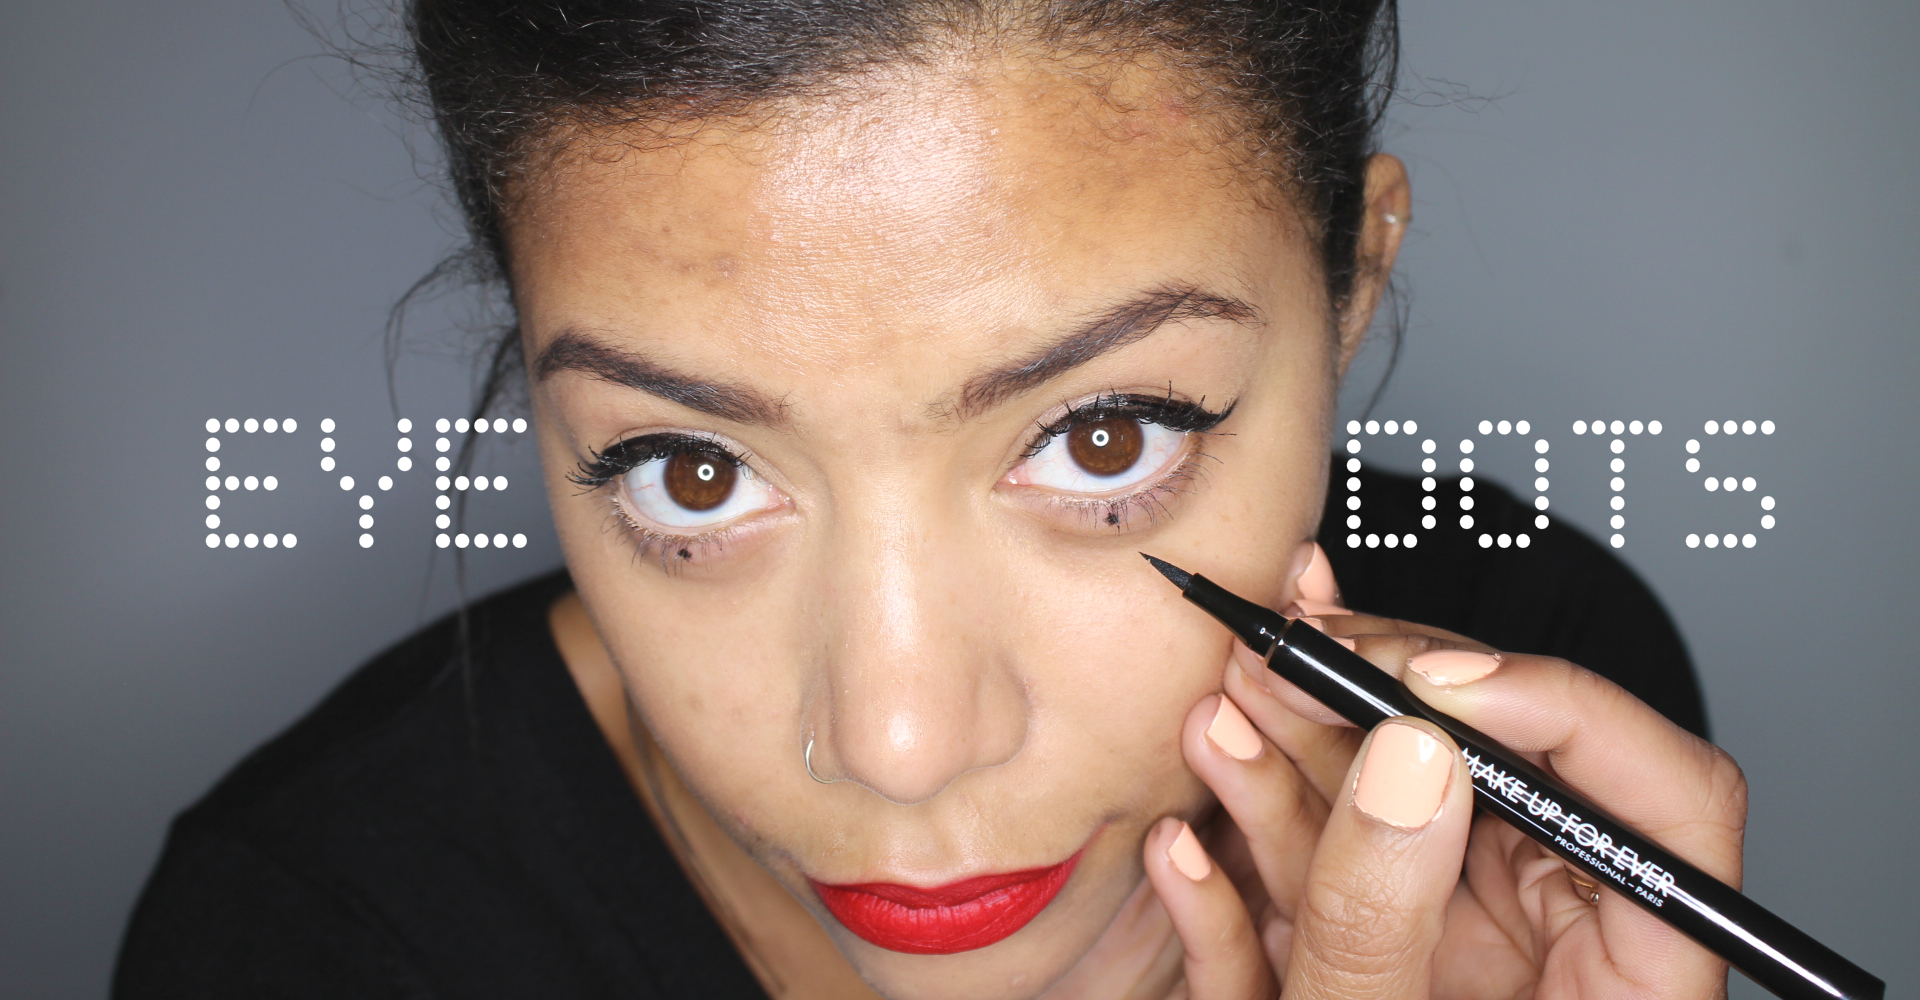 Makeup Trend How To Do Eye Dots